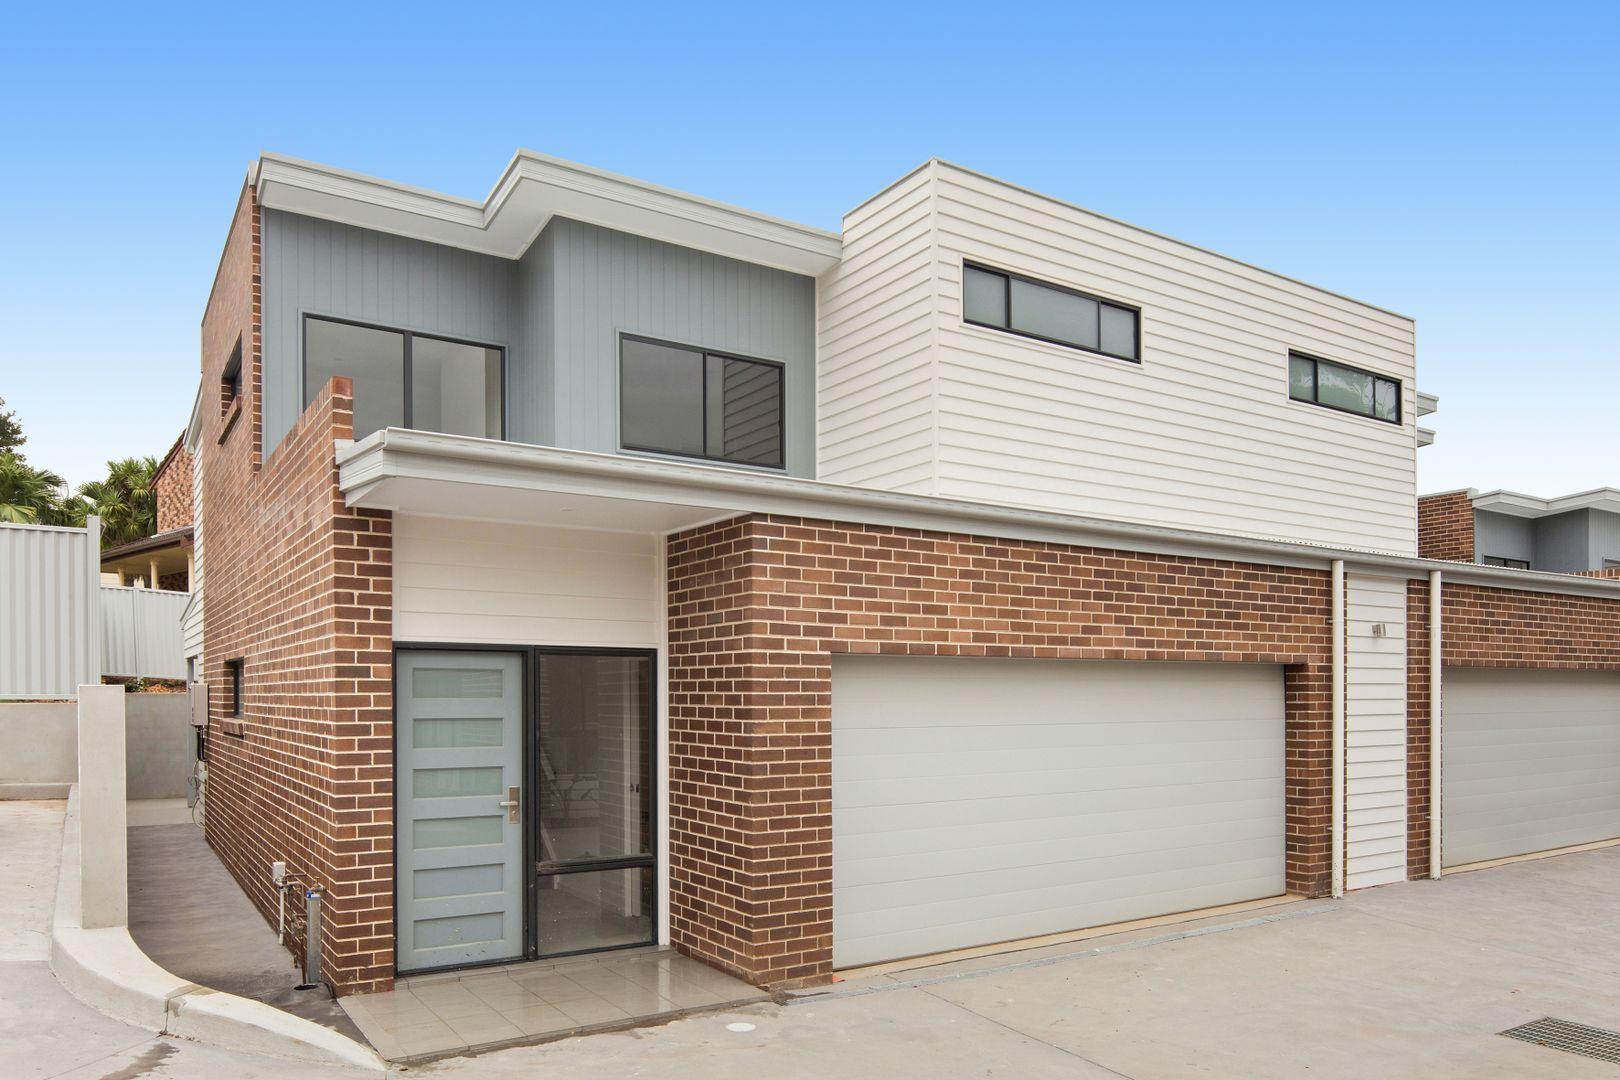 6/53 Russell Street, Balgownie NSW 2519, Image 0